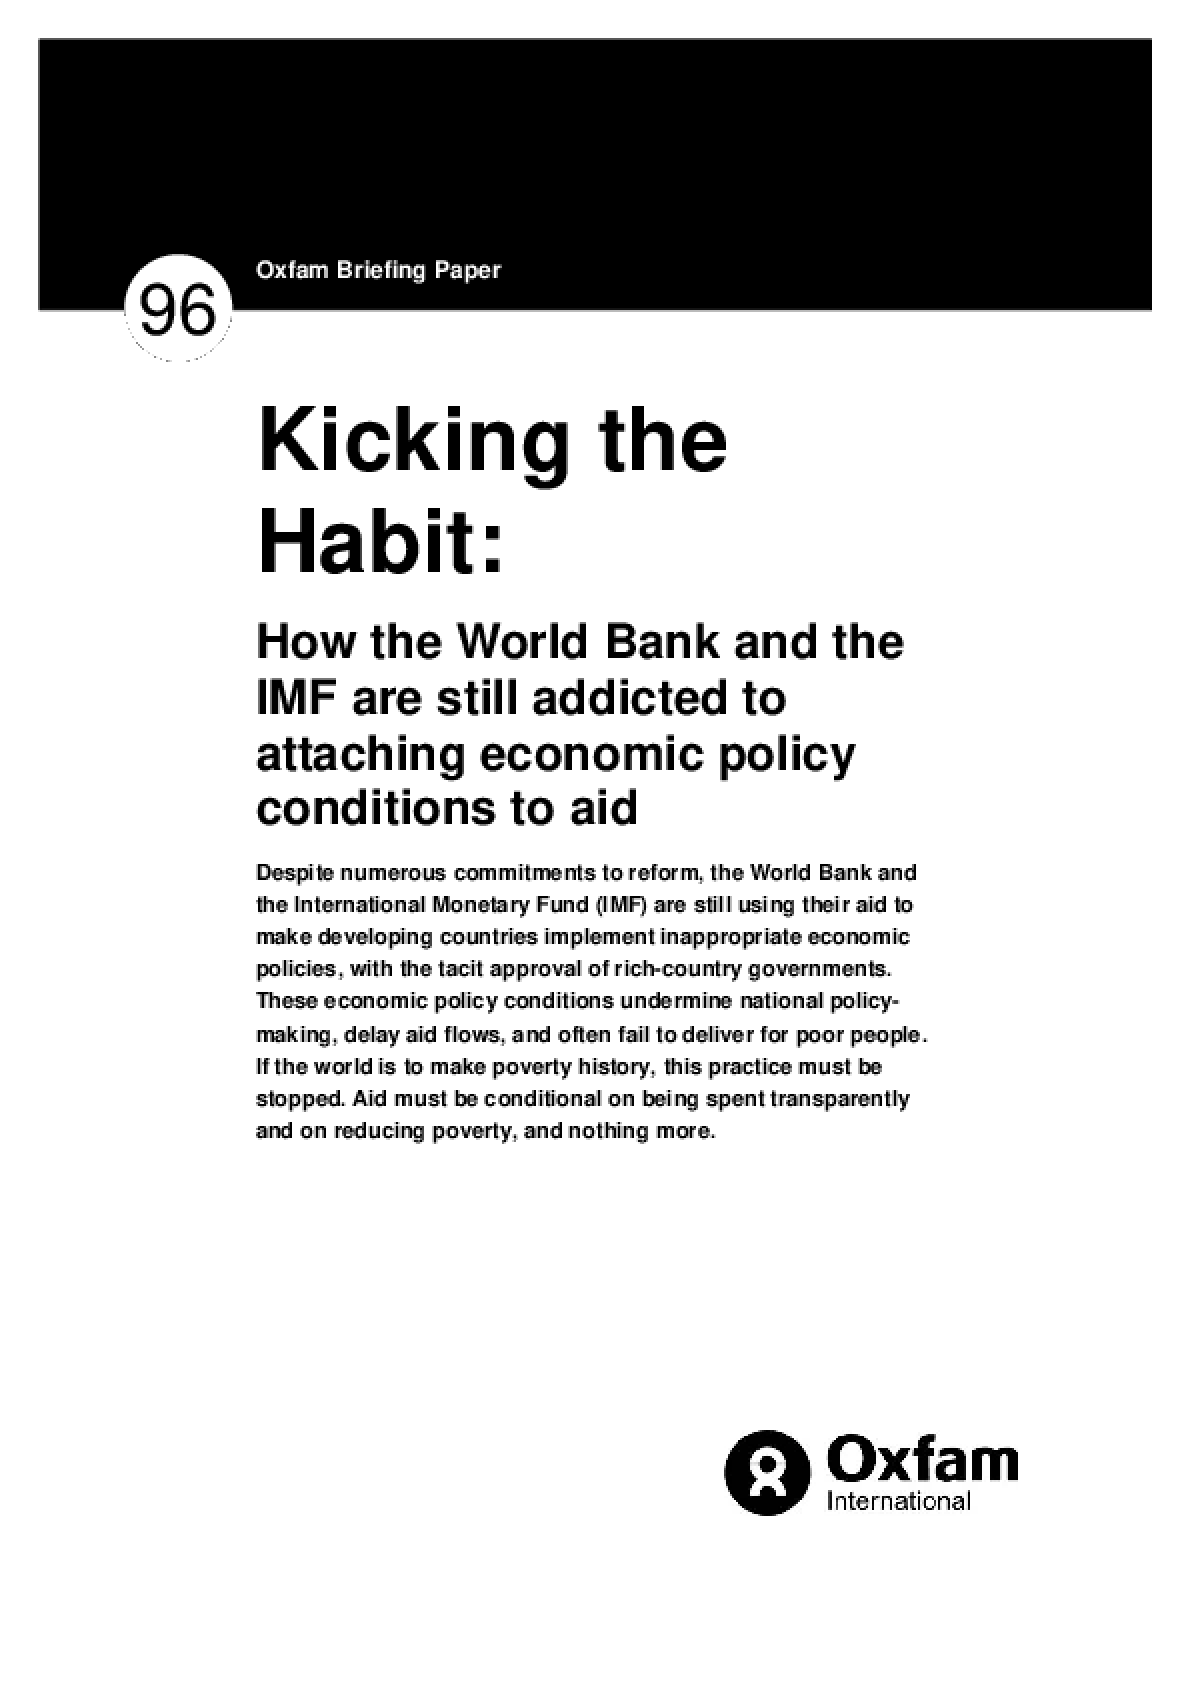 Kicking the Habit: How the World Bank and the IMF are still addicted to attaching economic policy conditions to aid